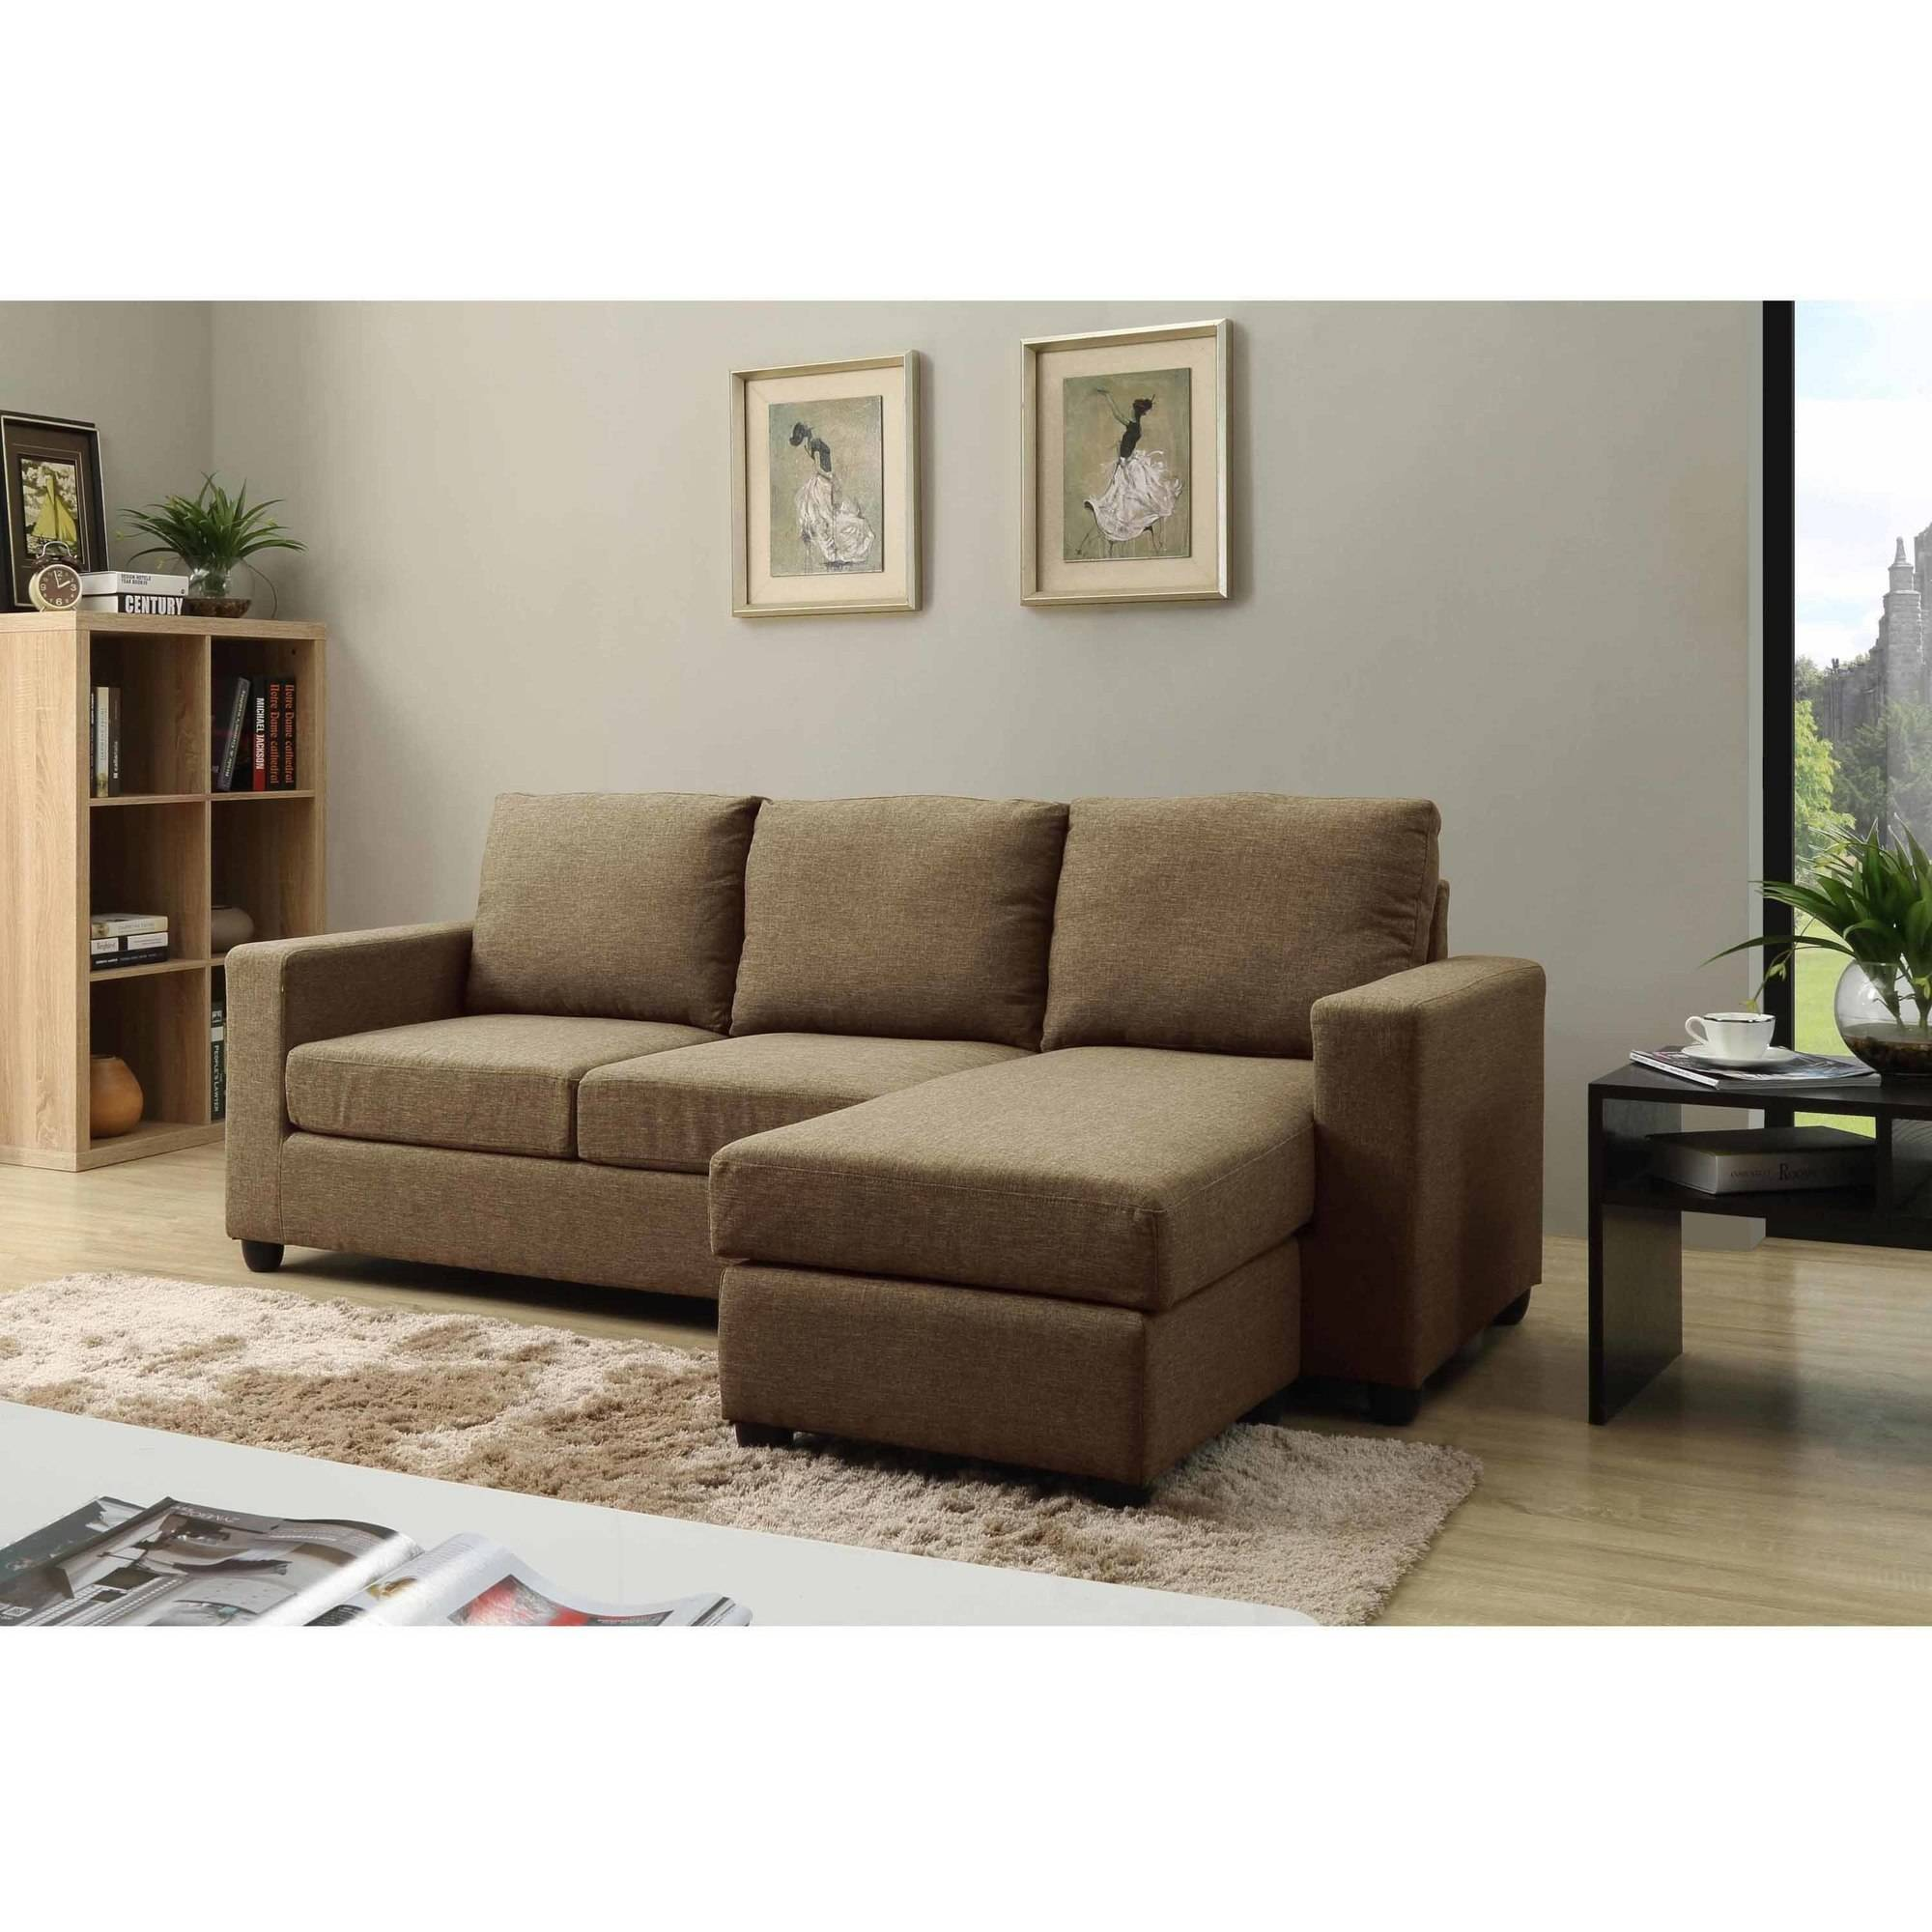 Sofas & Couches Top Decor & Furniture